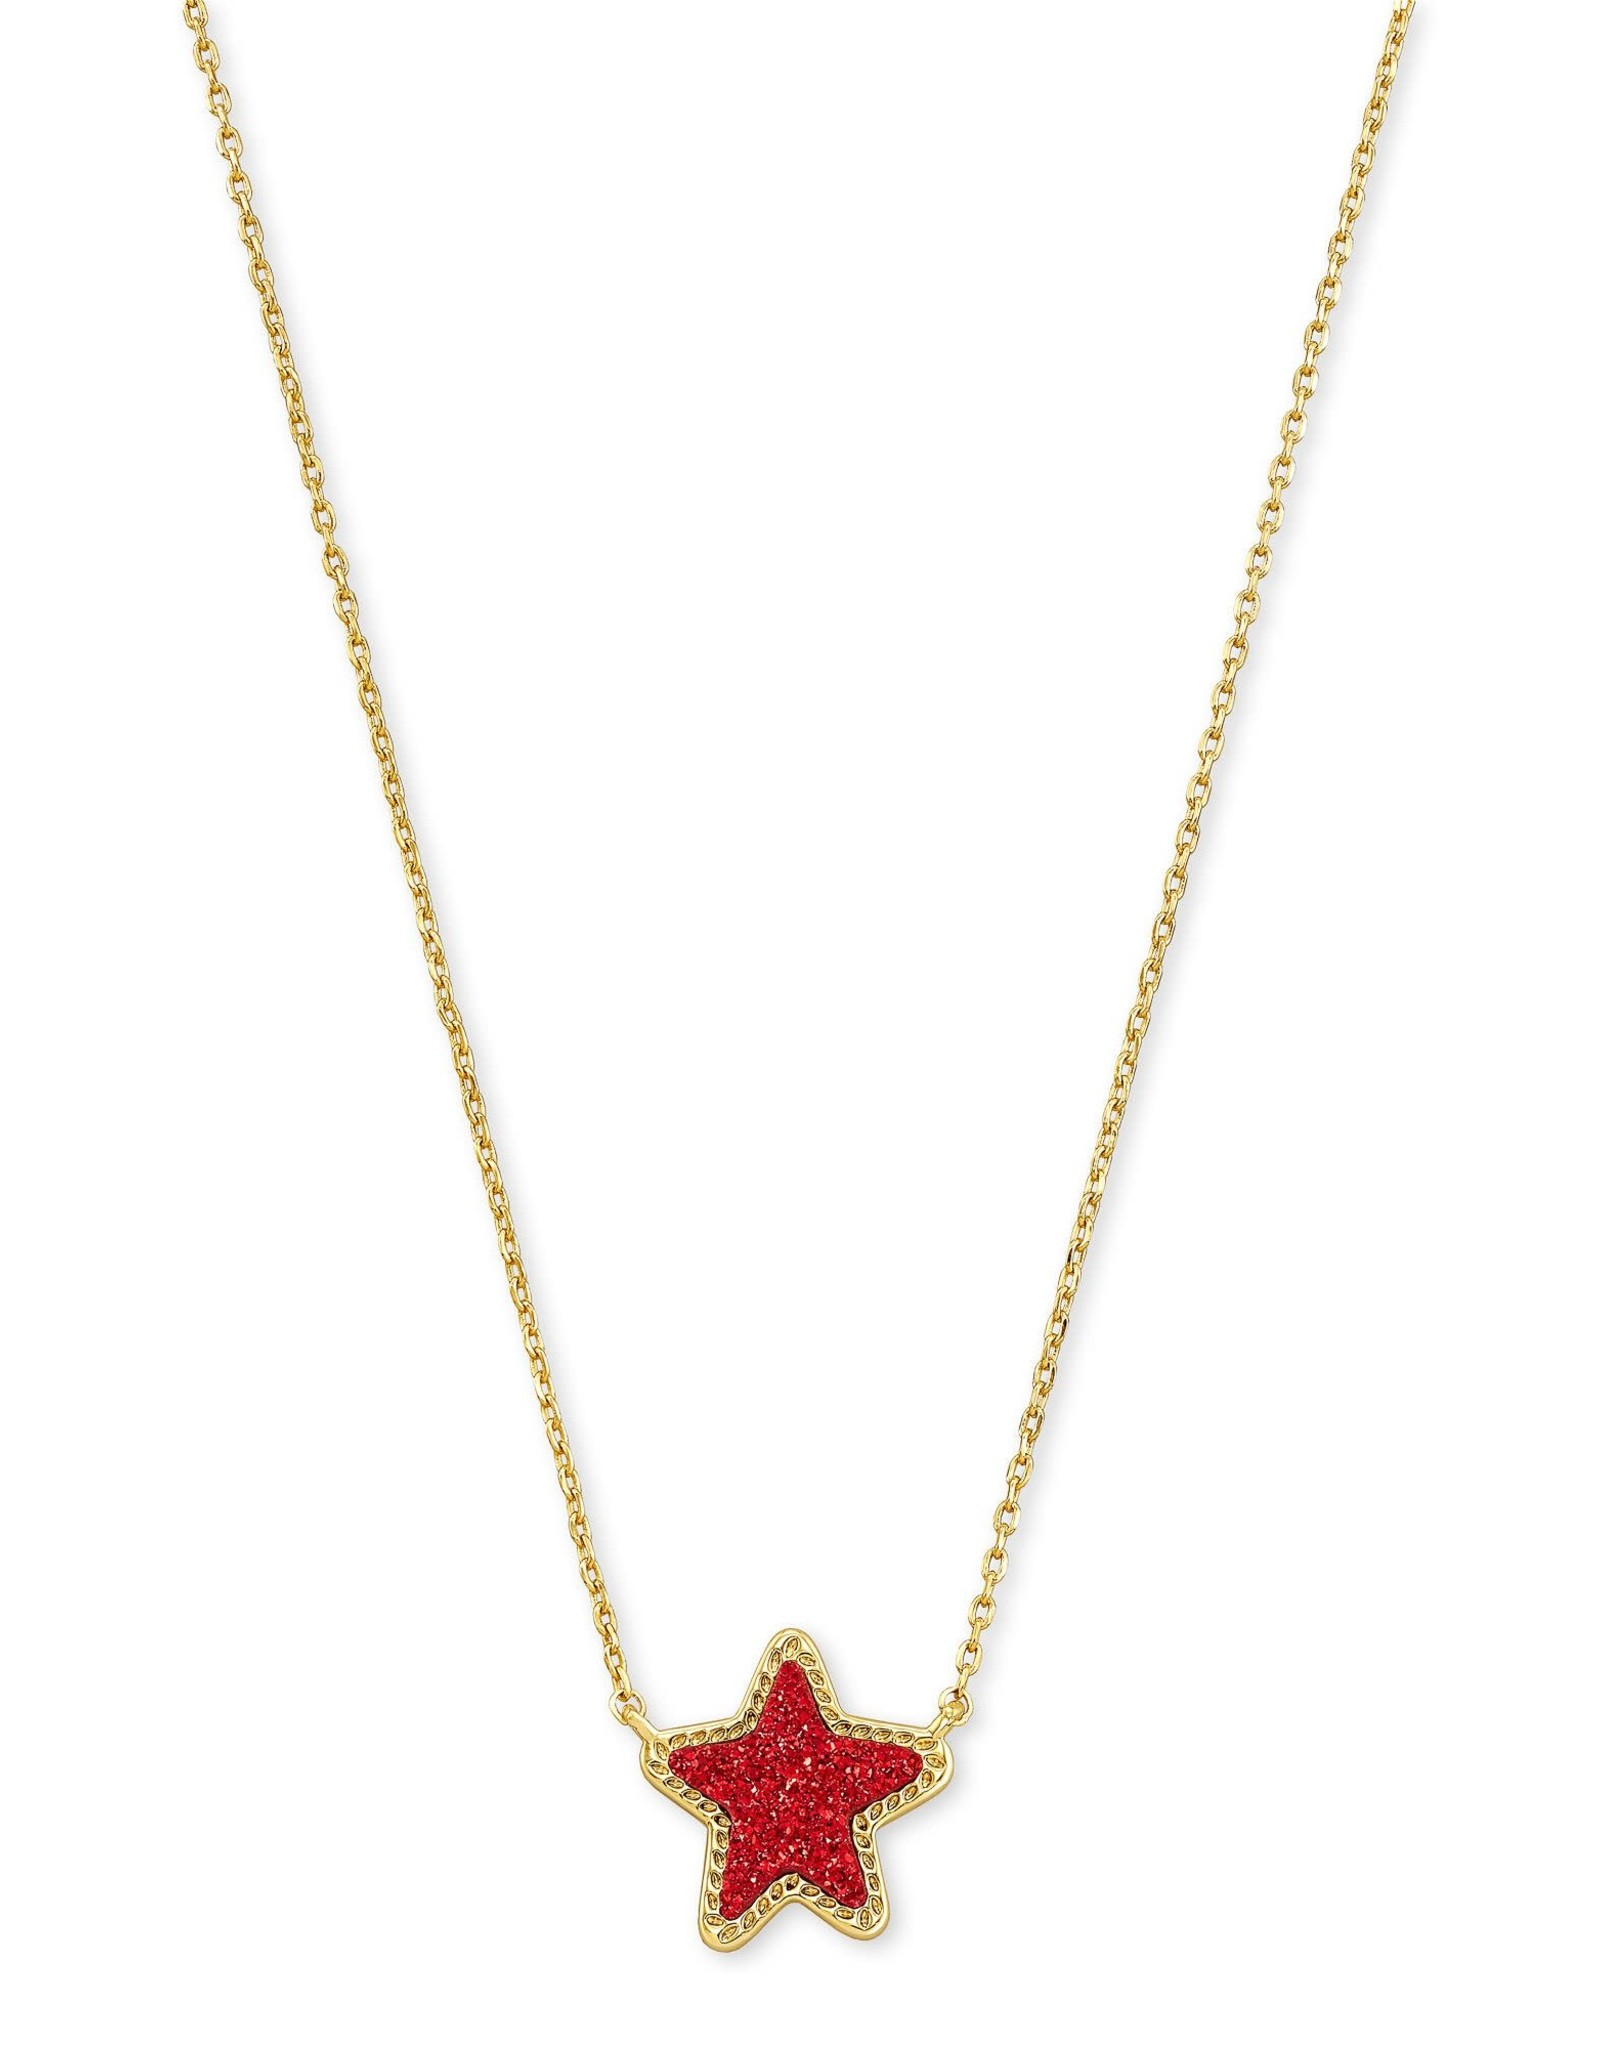 Kendra Scott Jae Star Short Pendant - Bright Red Drusy/Gold